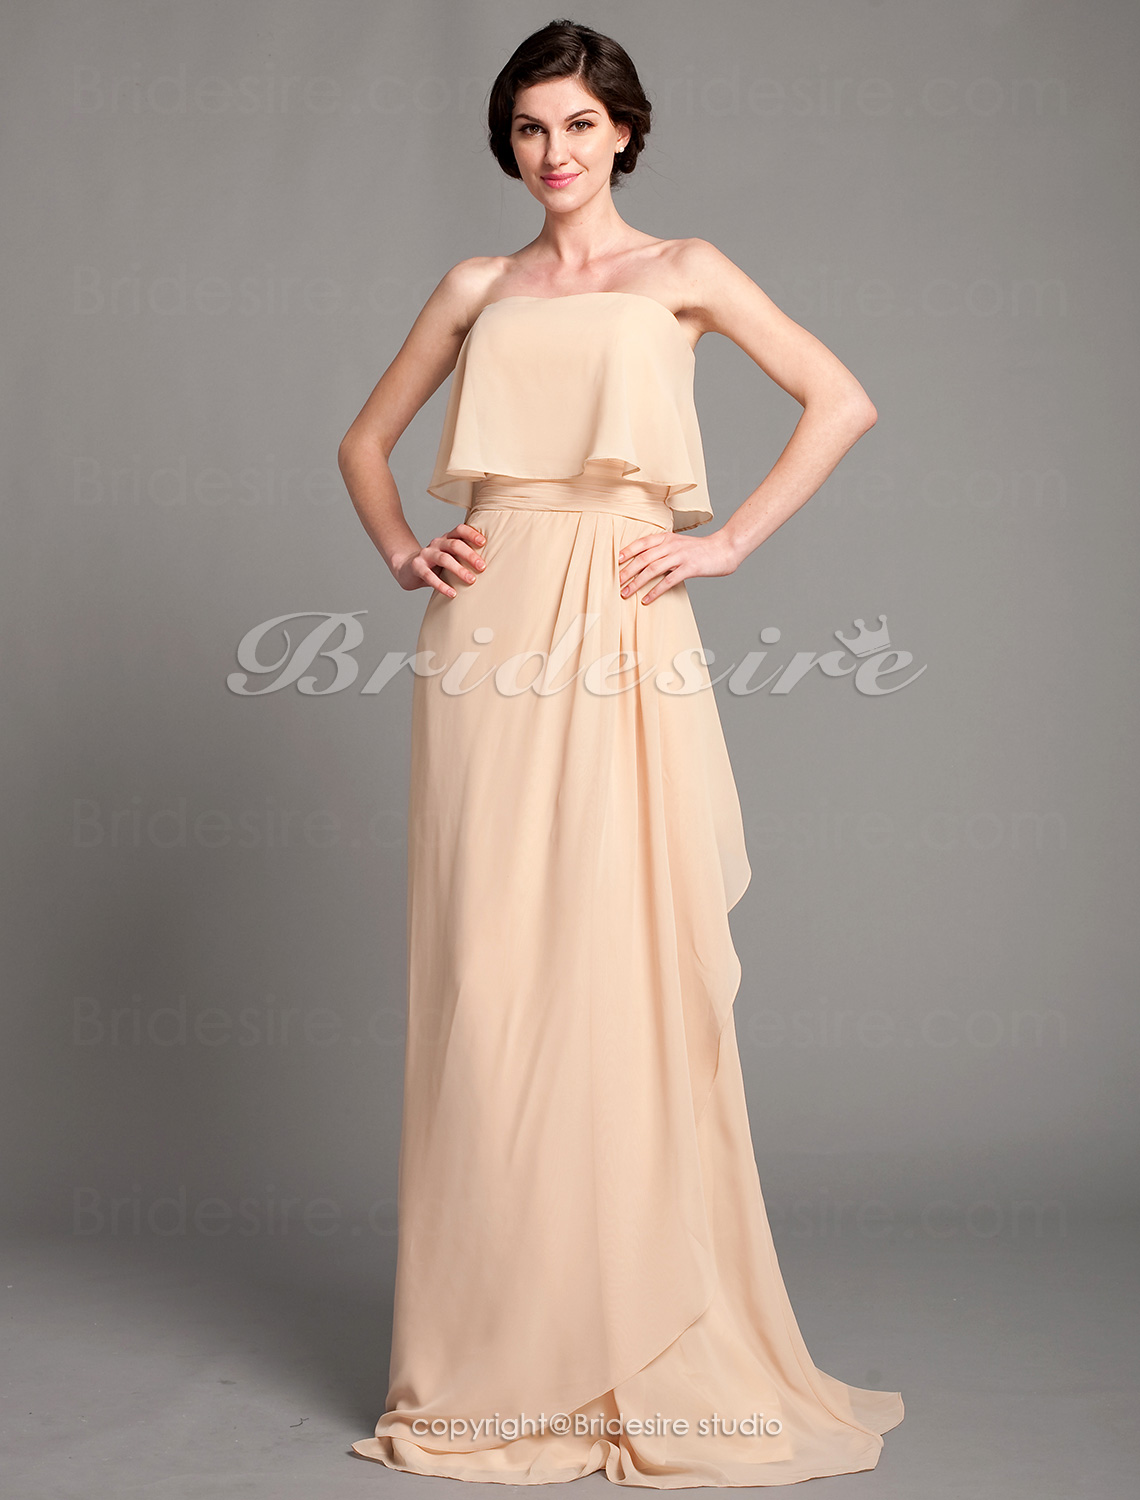 Sheath/ Column Chiffon Floor-length Sweetheart Mother of the Bride Dress